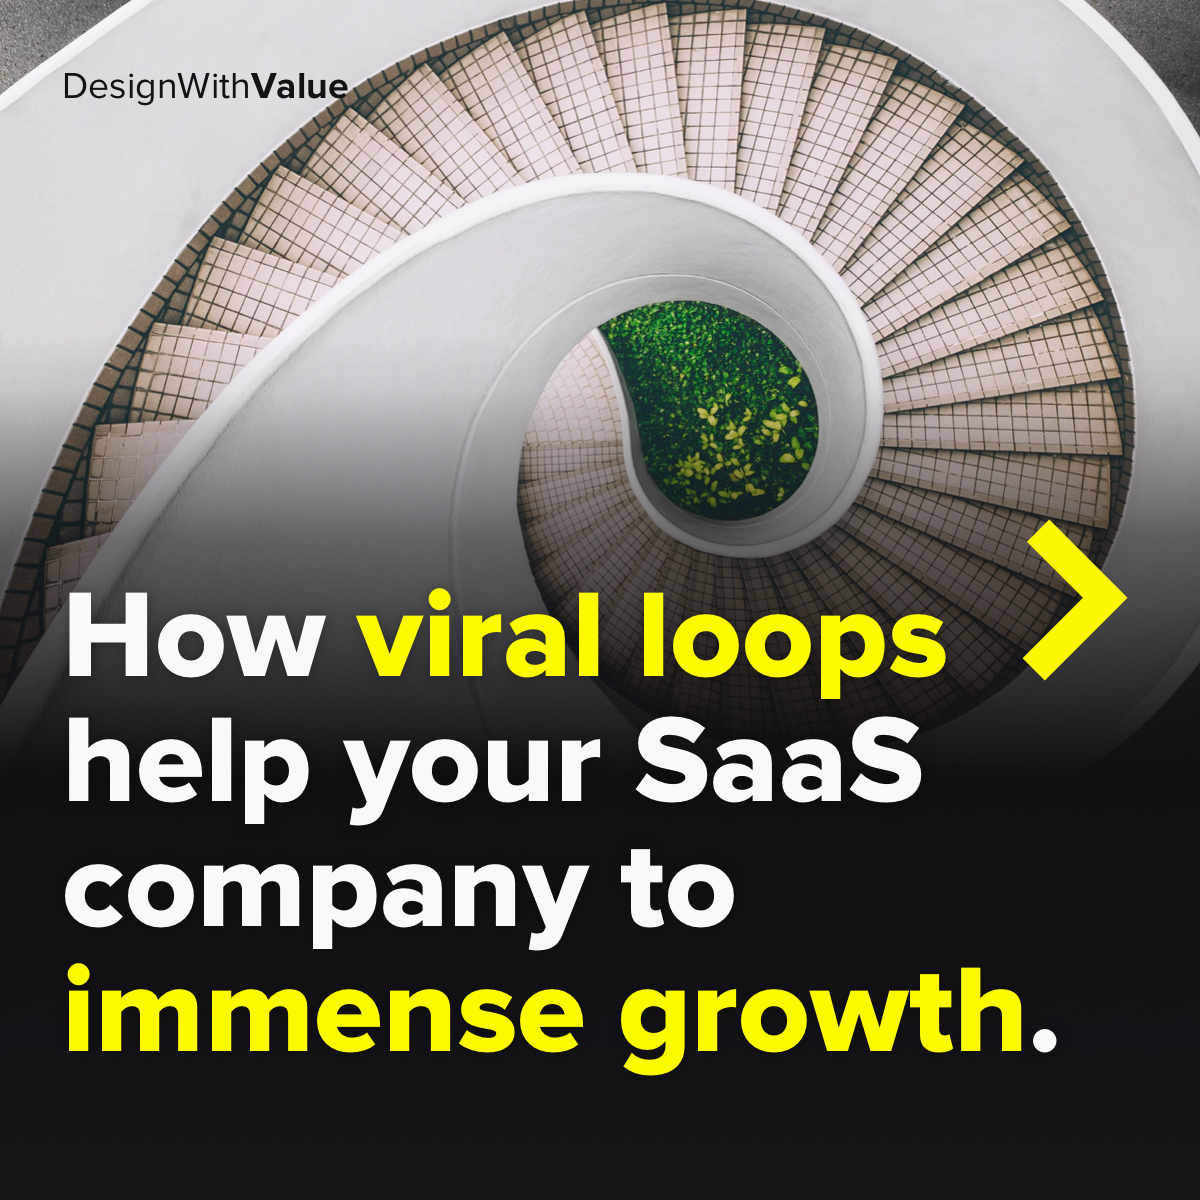 How viral loops help your saas company to immense growth.